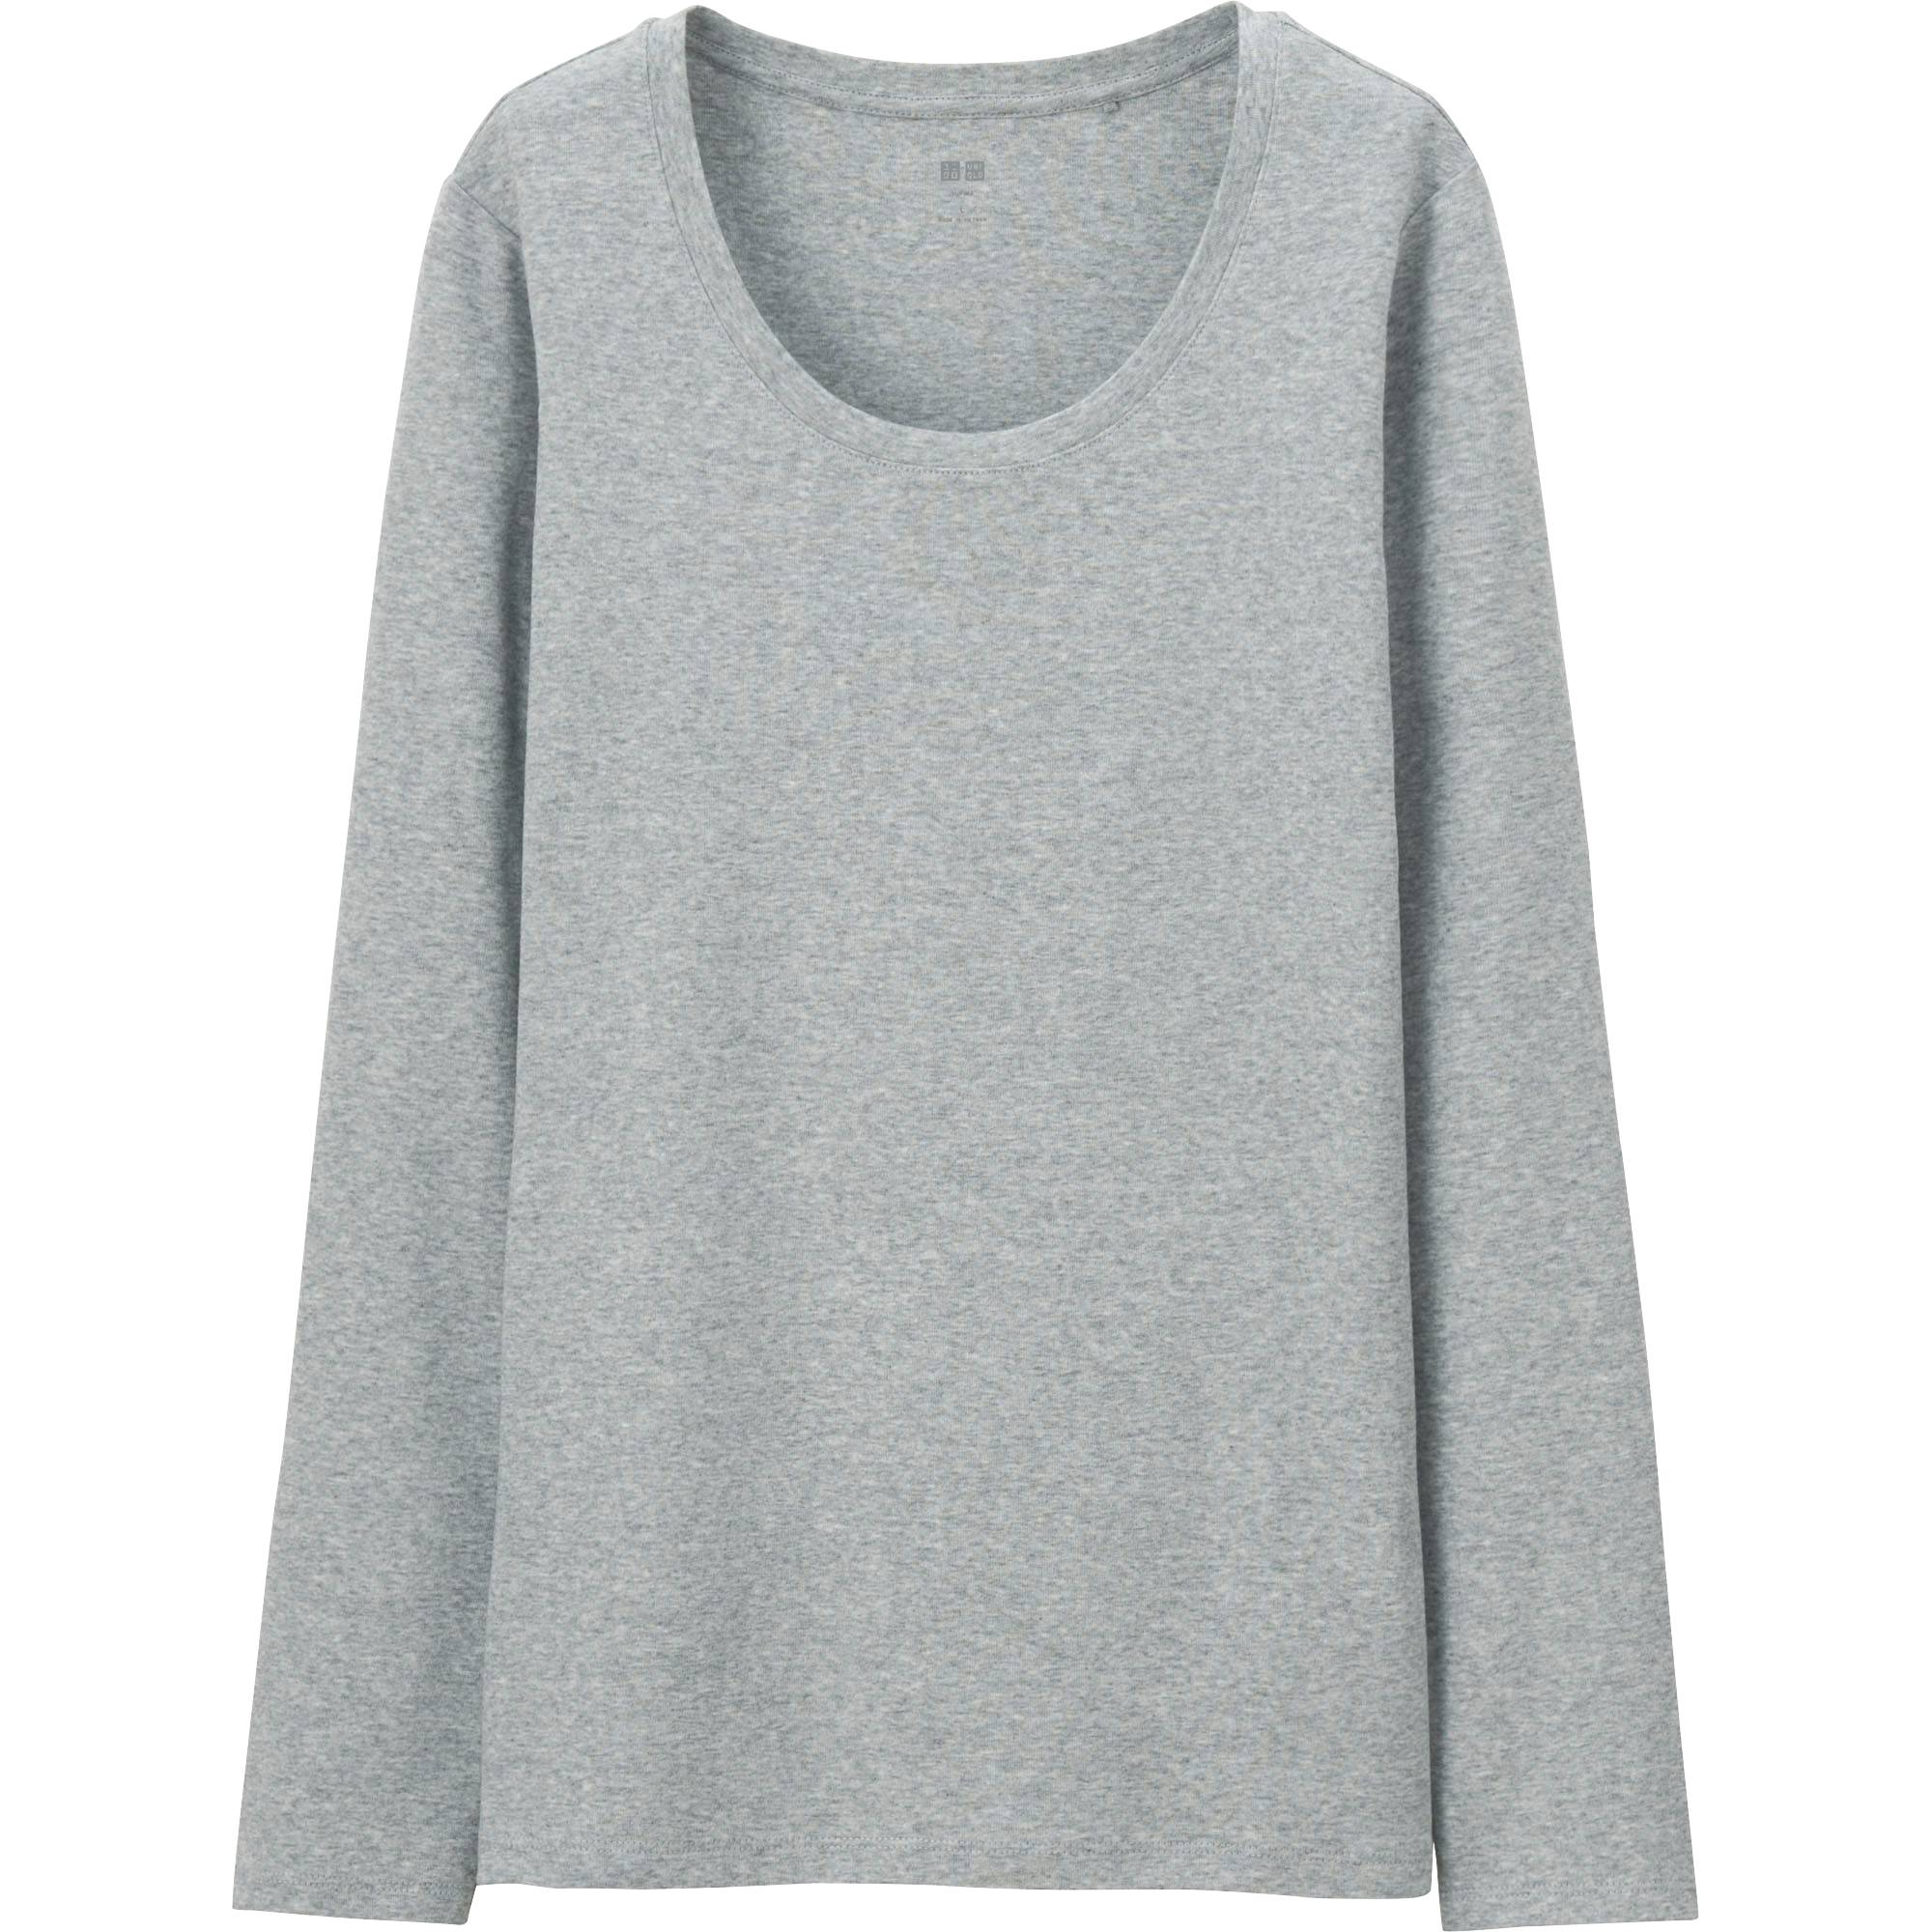 Need to Stock Up on Summer Basics, like Comfy Tees? Here's Some ...